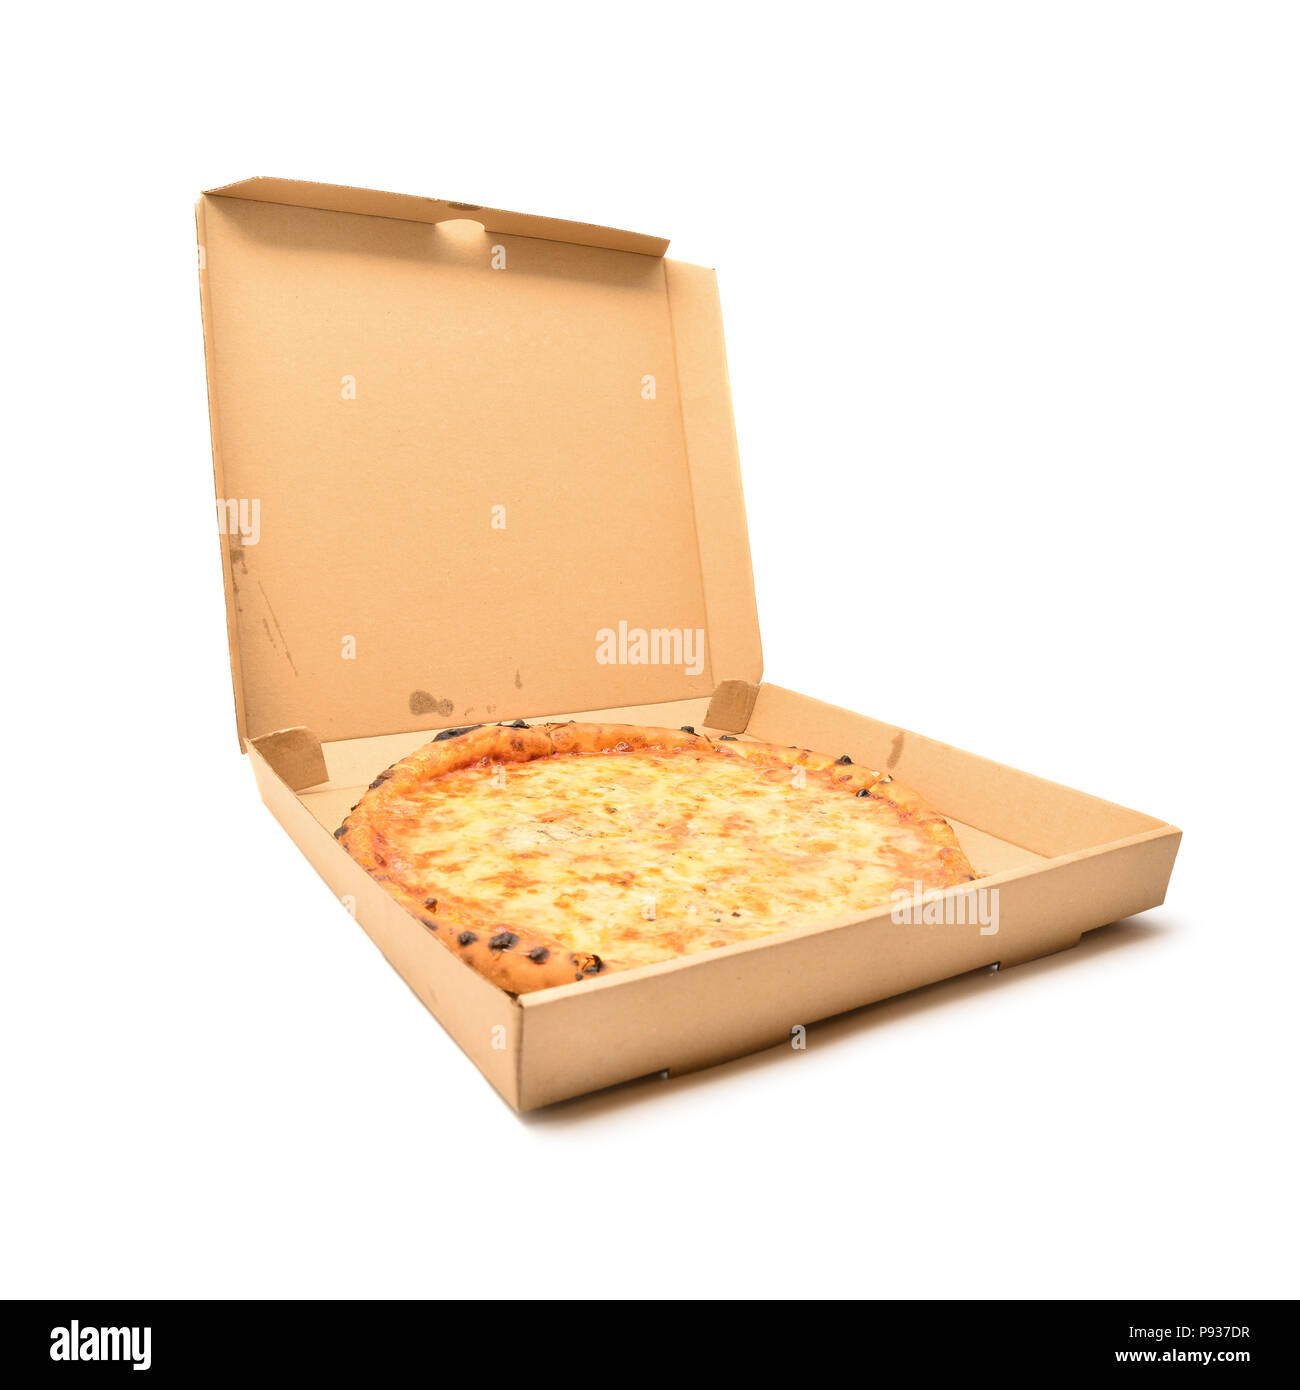 Quattro formaggi pizza dans la boîte en carton isolated on white Banque D'Images